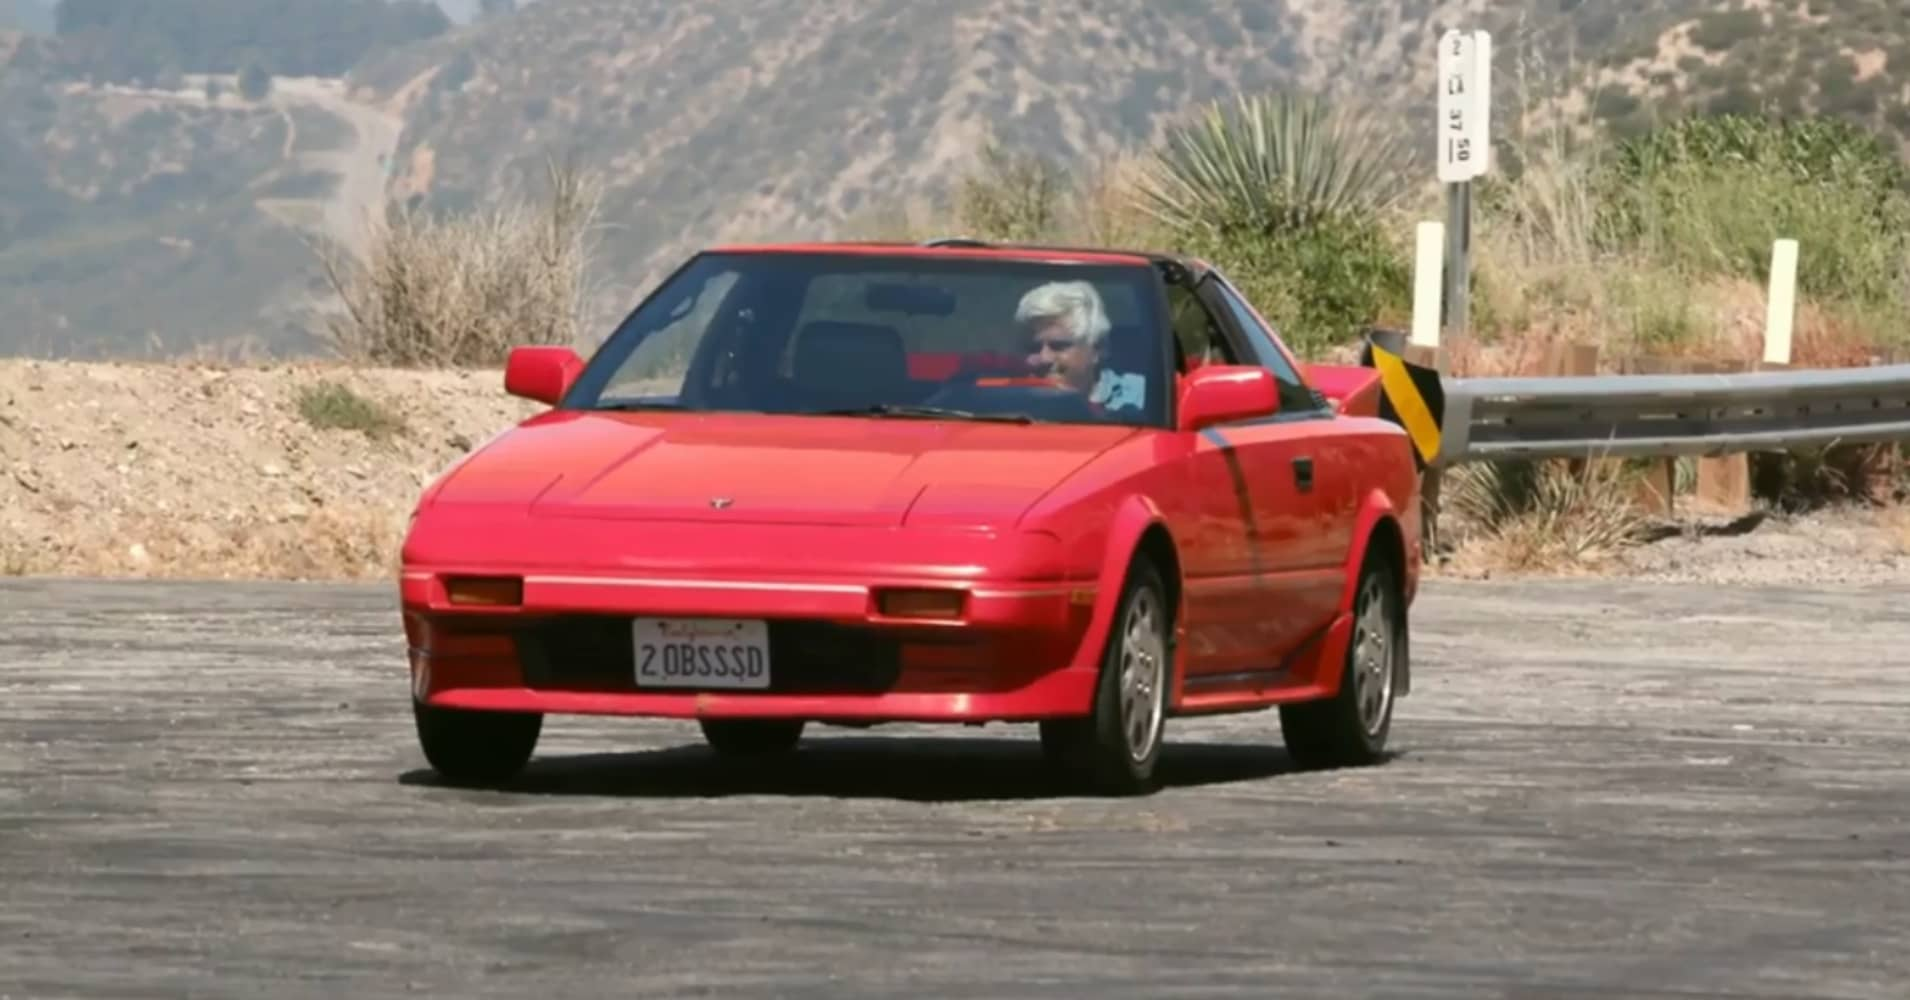 1988 Toyota MR2 Supercharged with Jay Leno behind the wheel